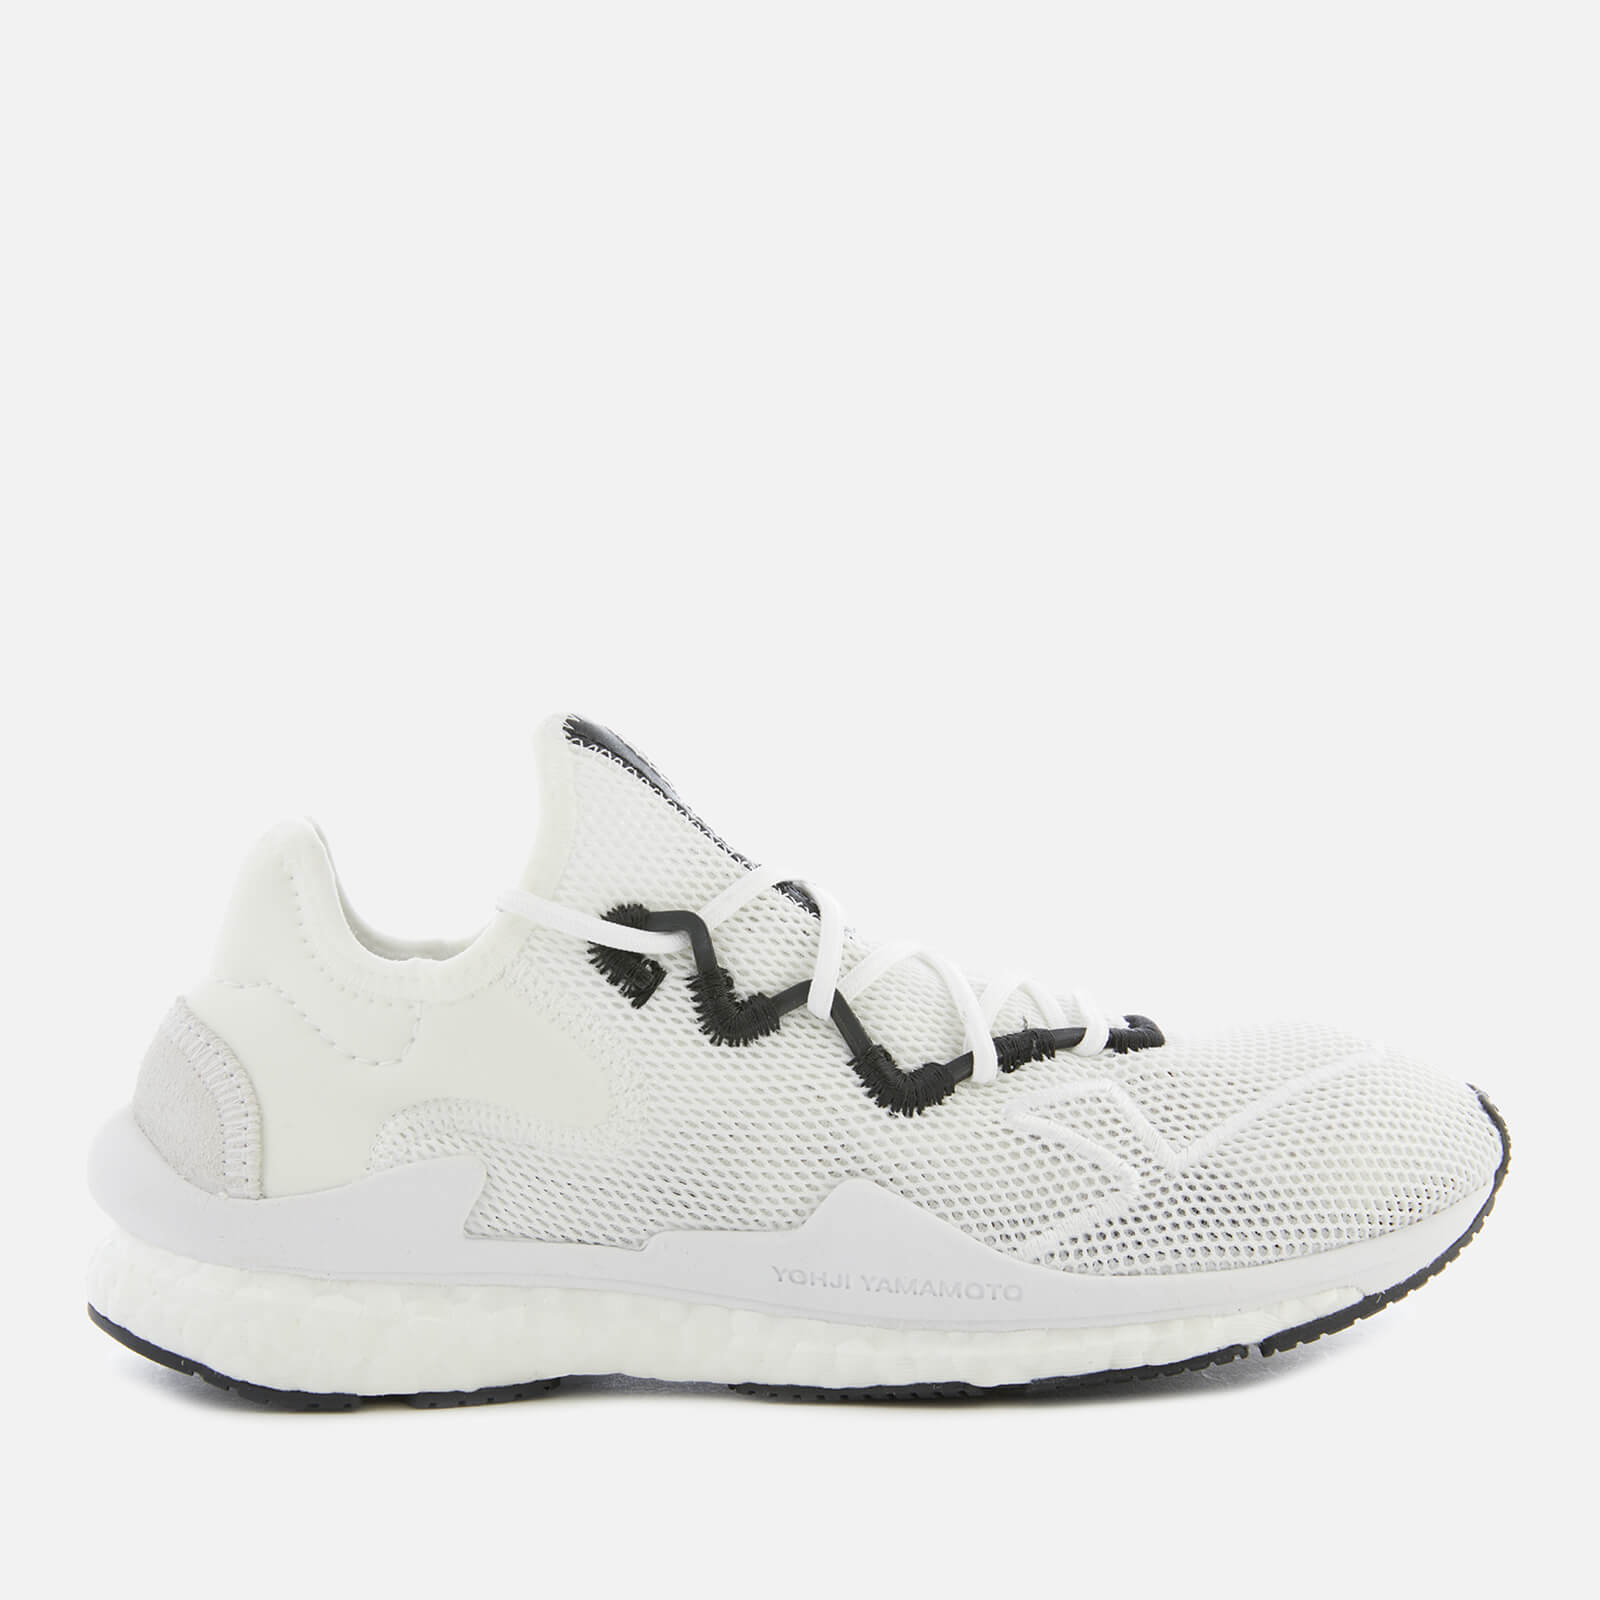 ea899eeb4 Y-3 Women s Adizero Runner Trainers - FTWR White - Free UK Delivery over £50